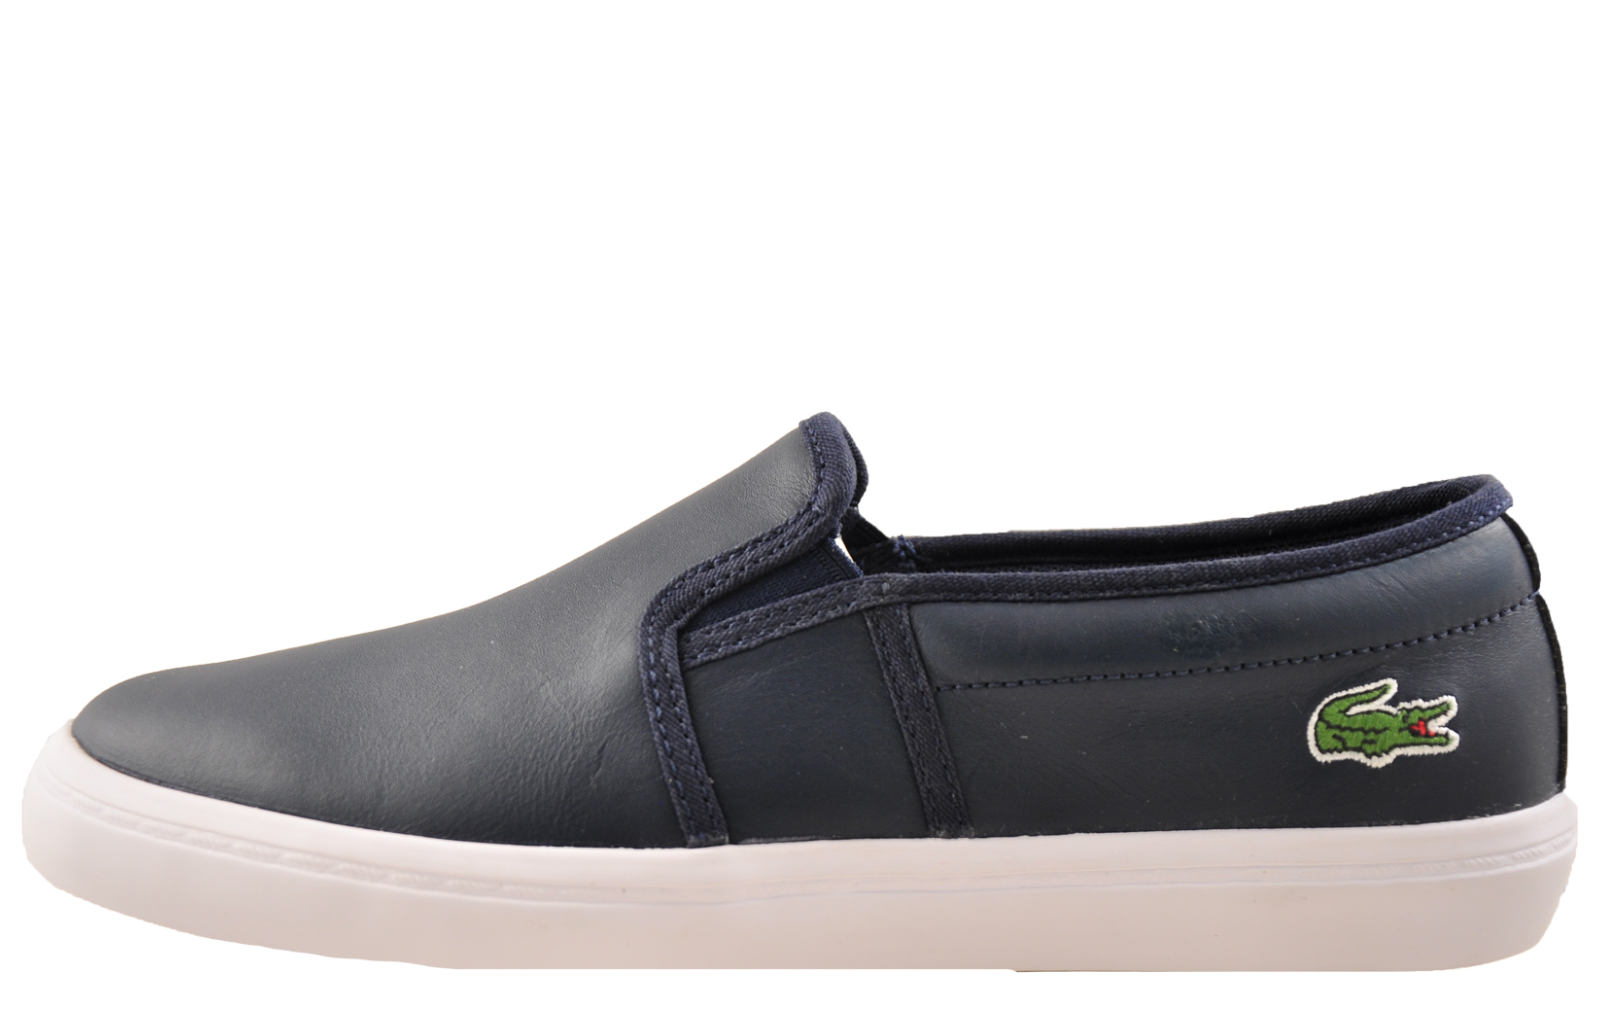 Lacoste Gazon Leather Slip On Womens B Grade - LA184325B